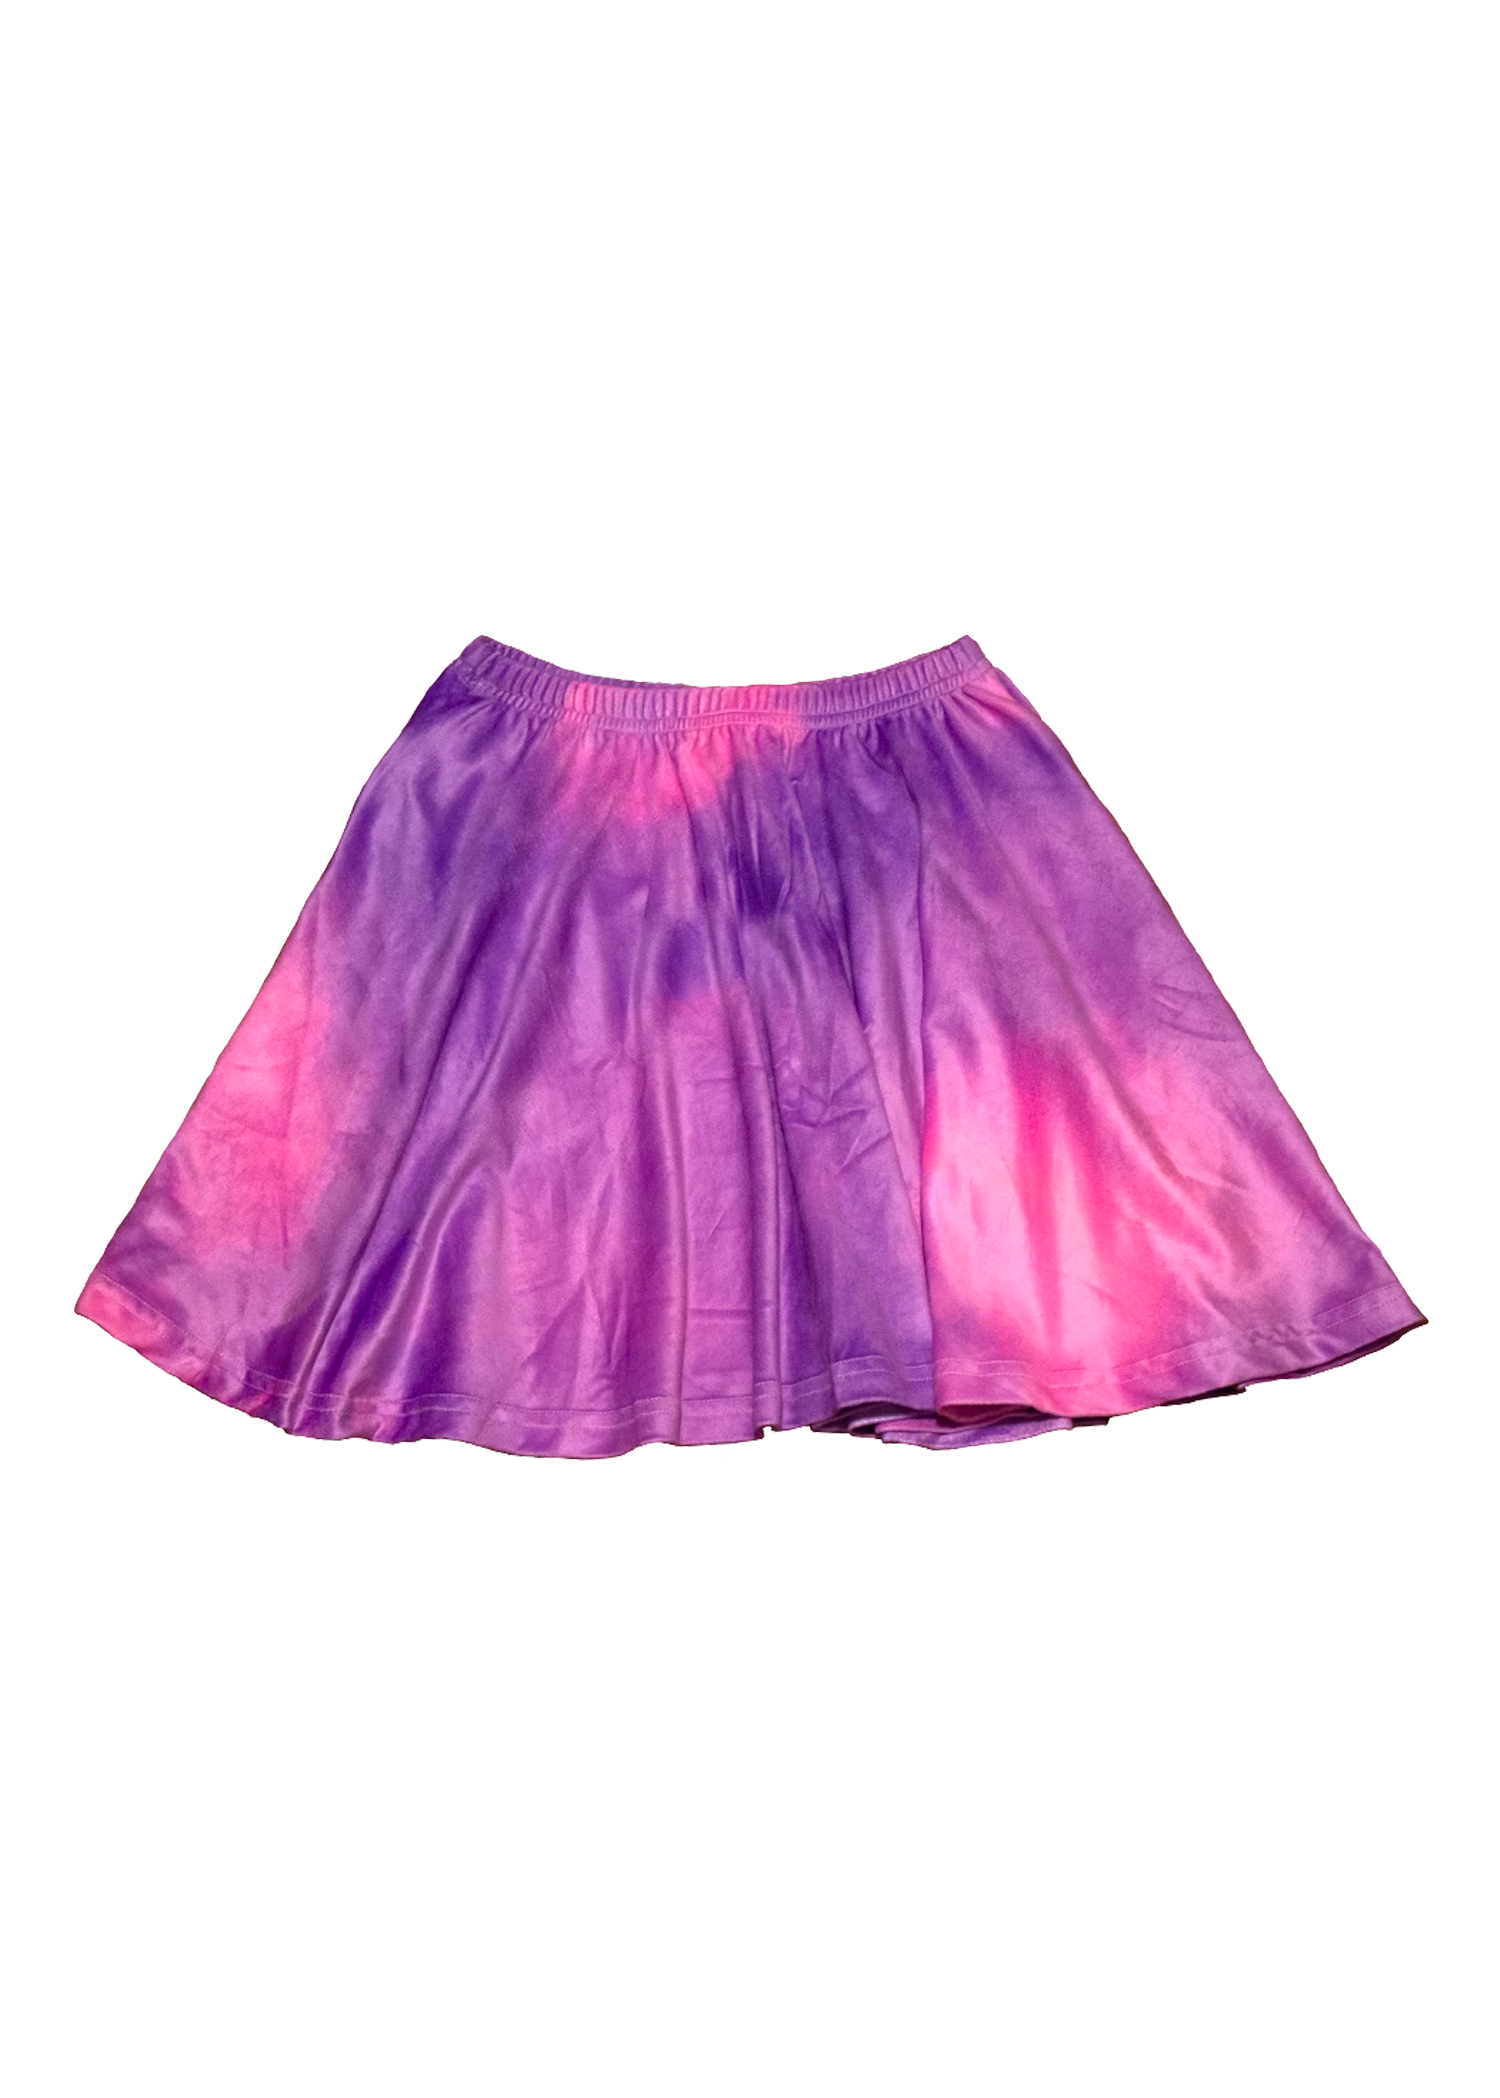 Velvet Tie Dye Skirt in Mood